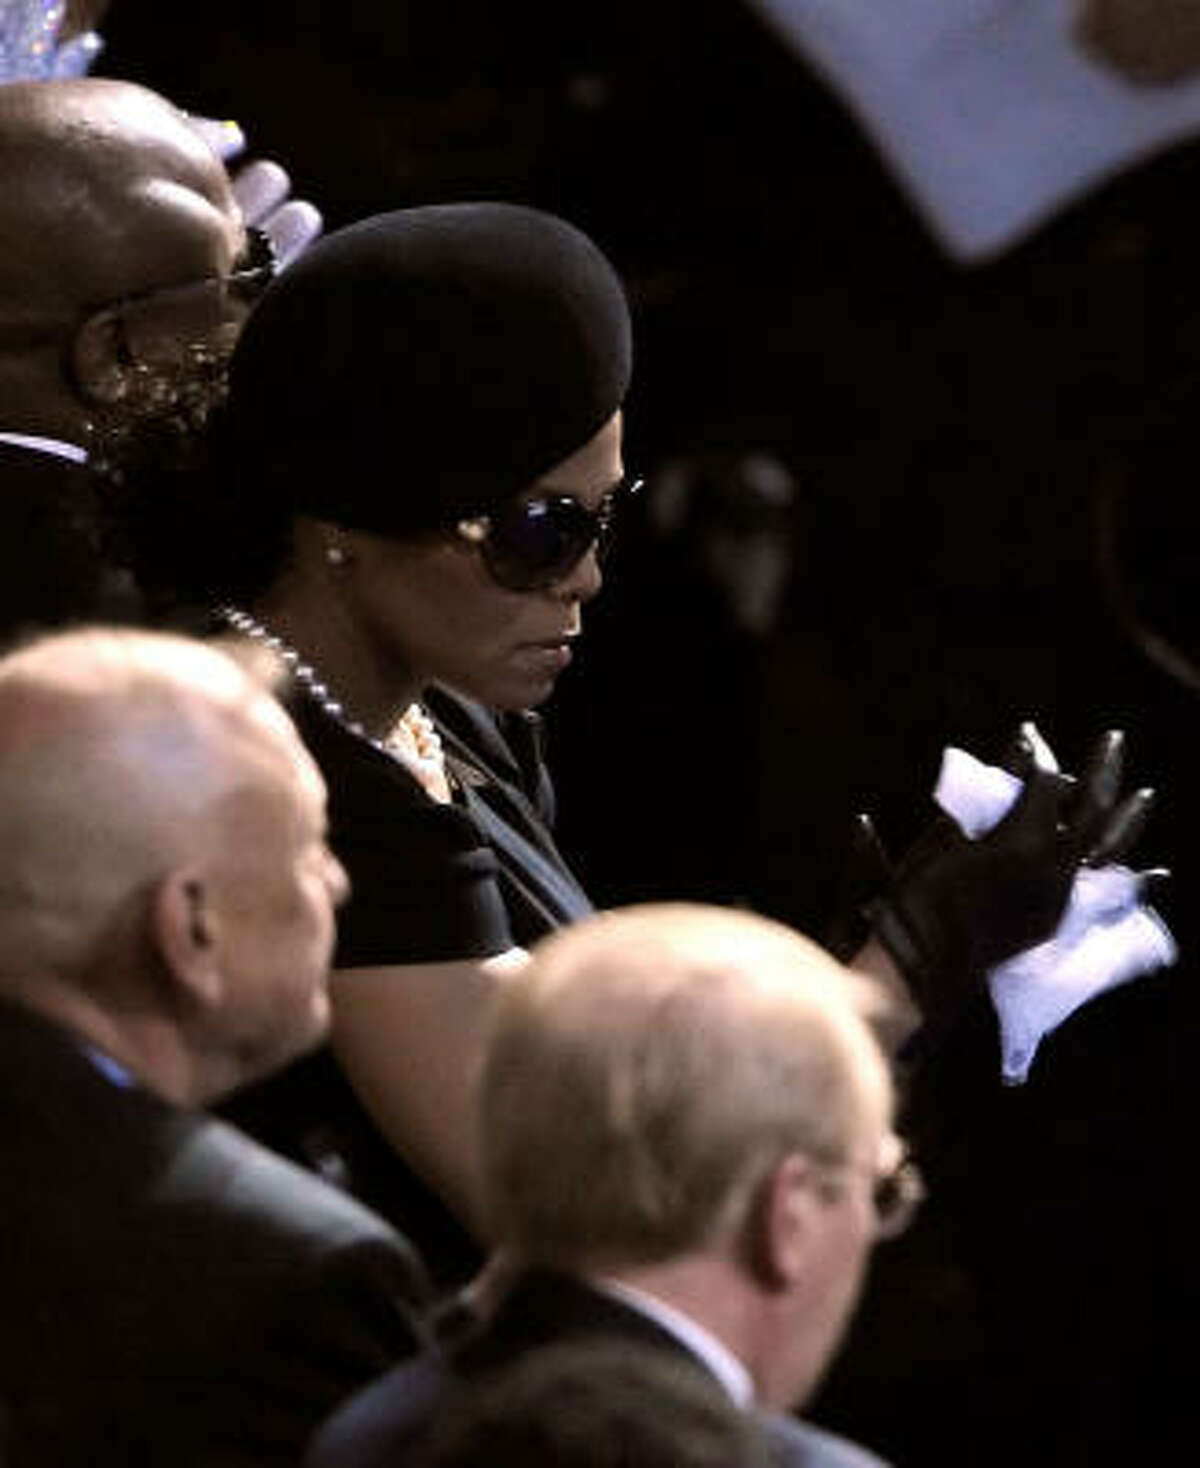 Janet Jackson attends a memorial service for her brother Michael Jackson at the Staples Center.